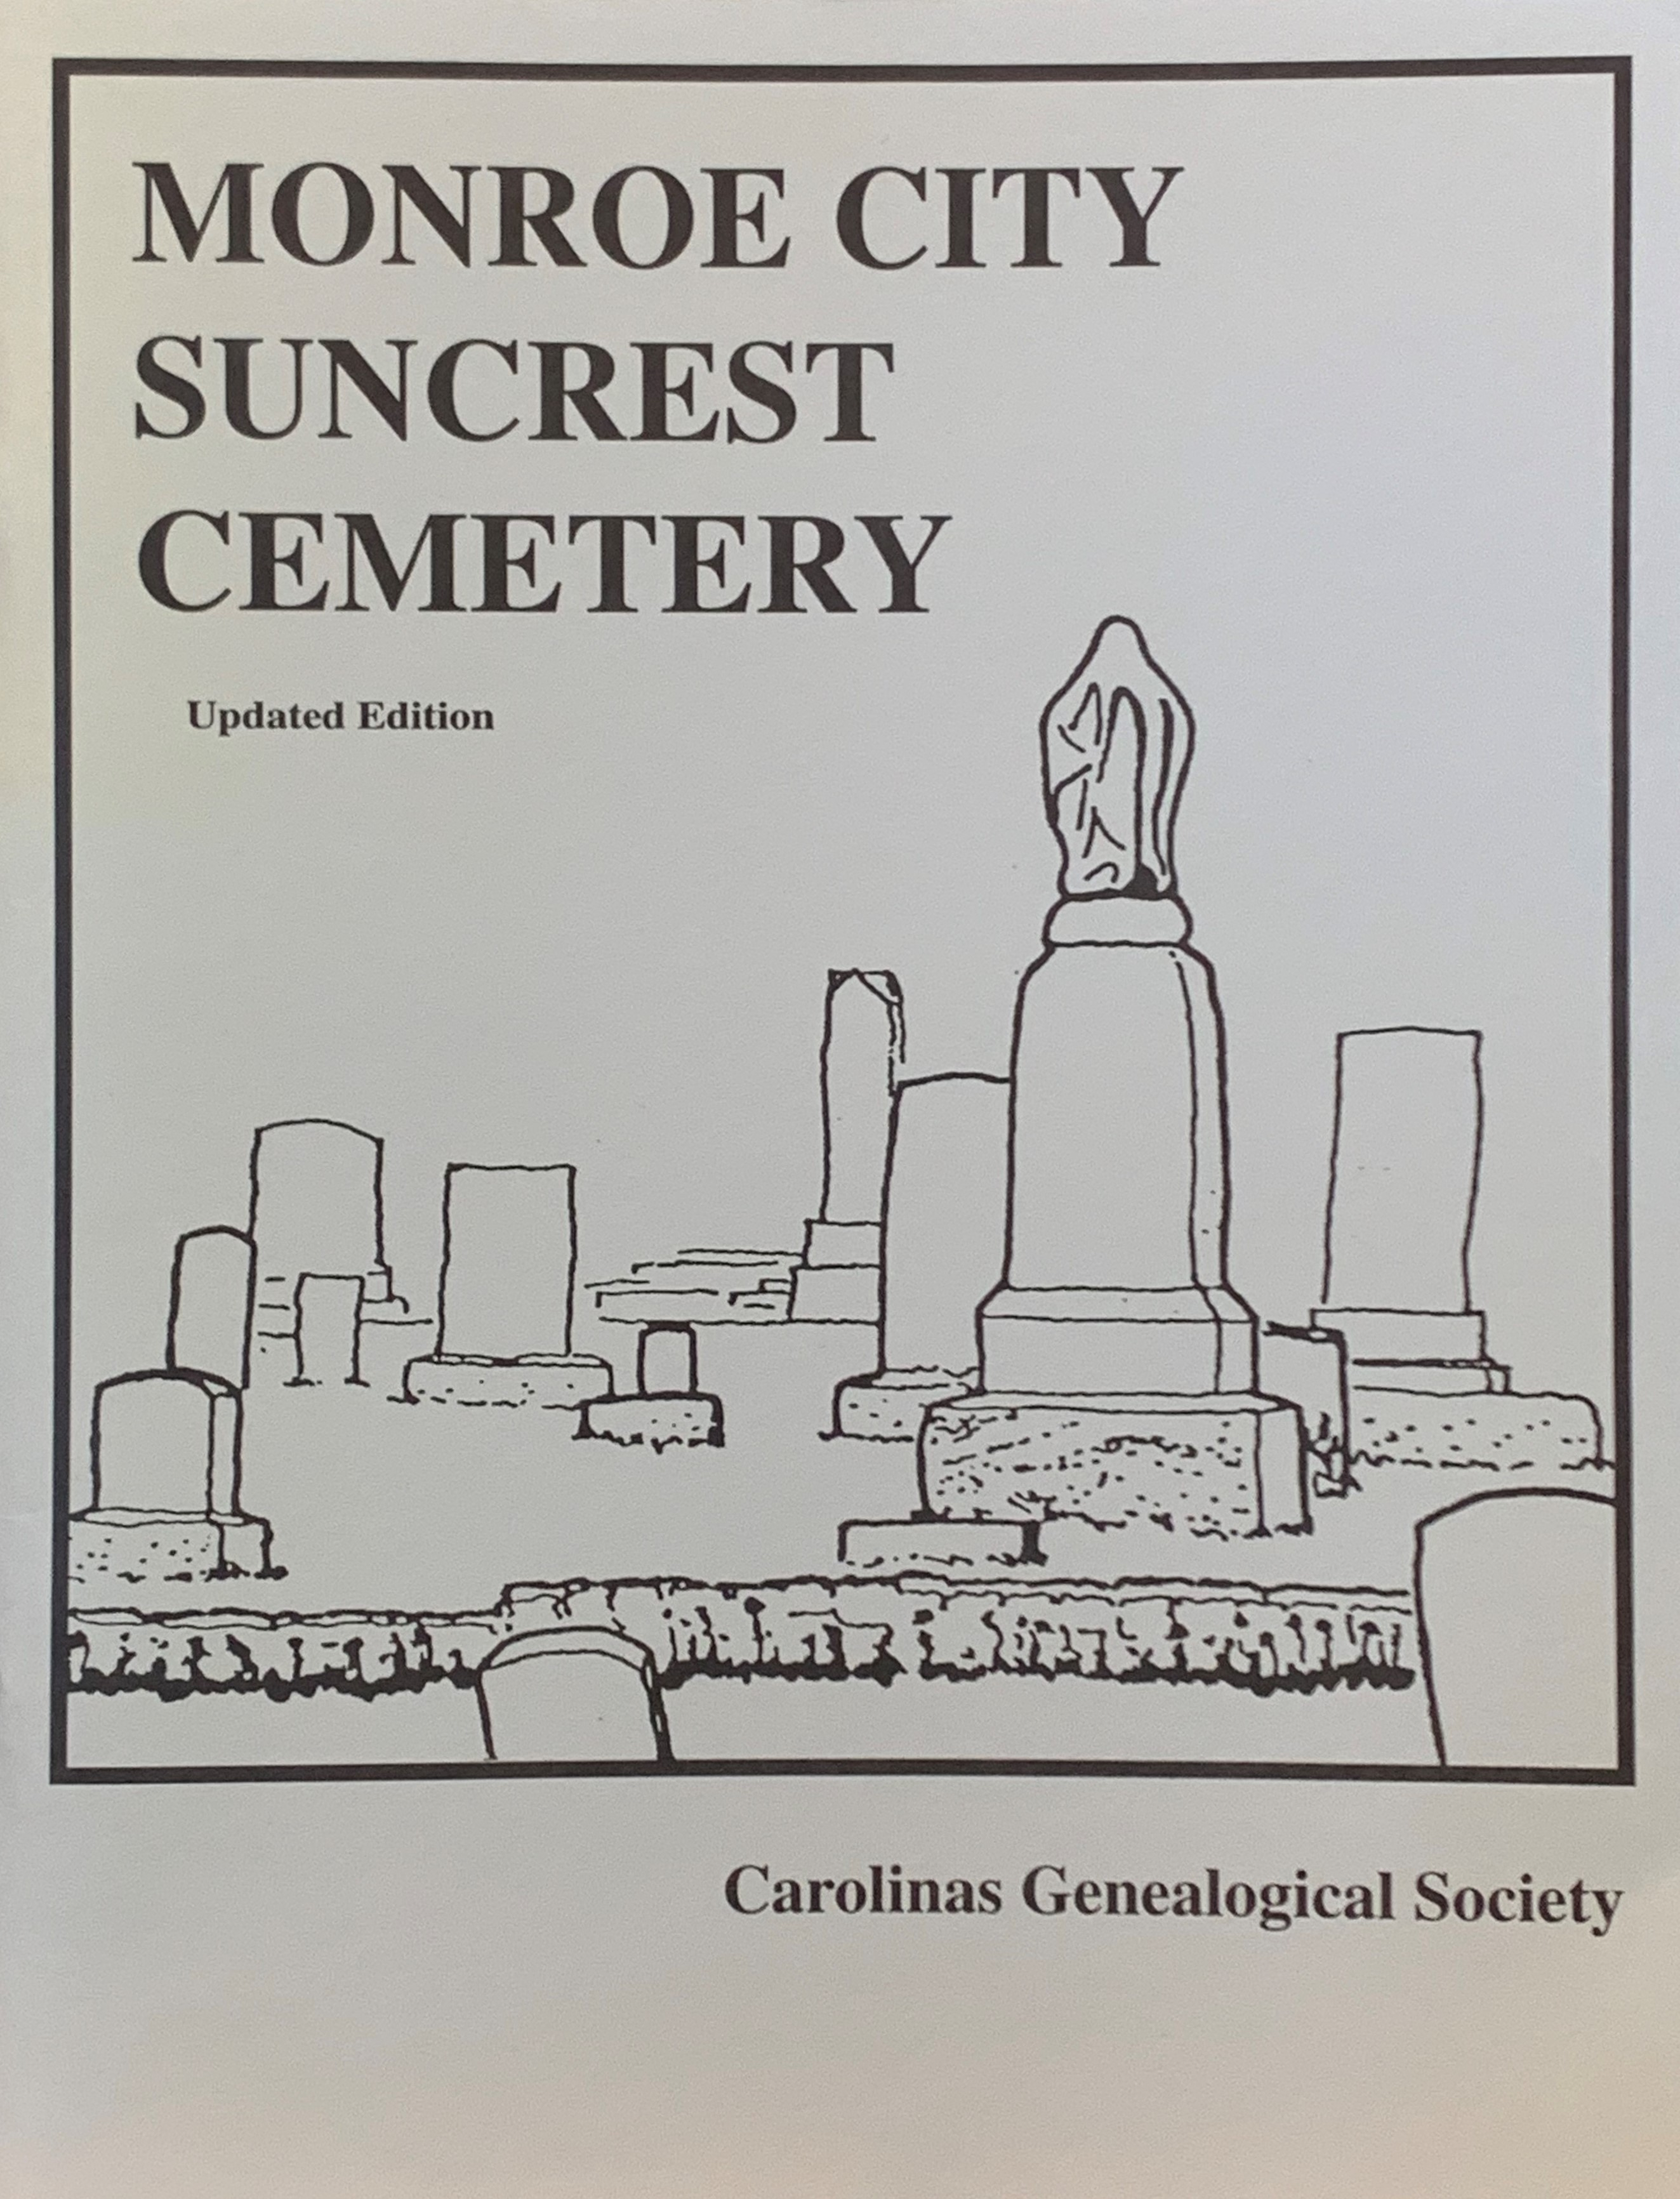 Monroe City Suncrest Cemetery Updated Edition